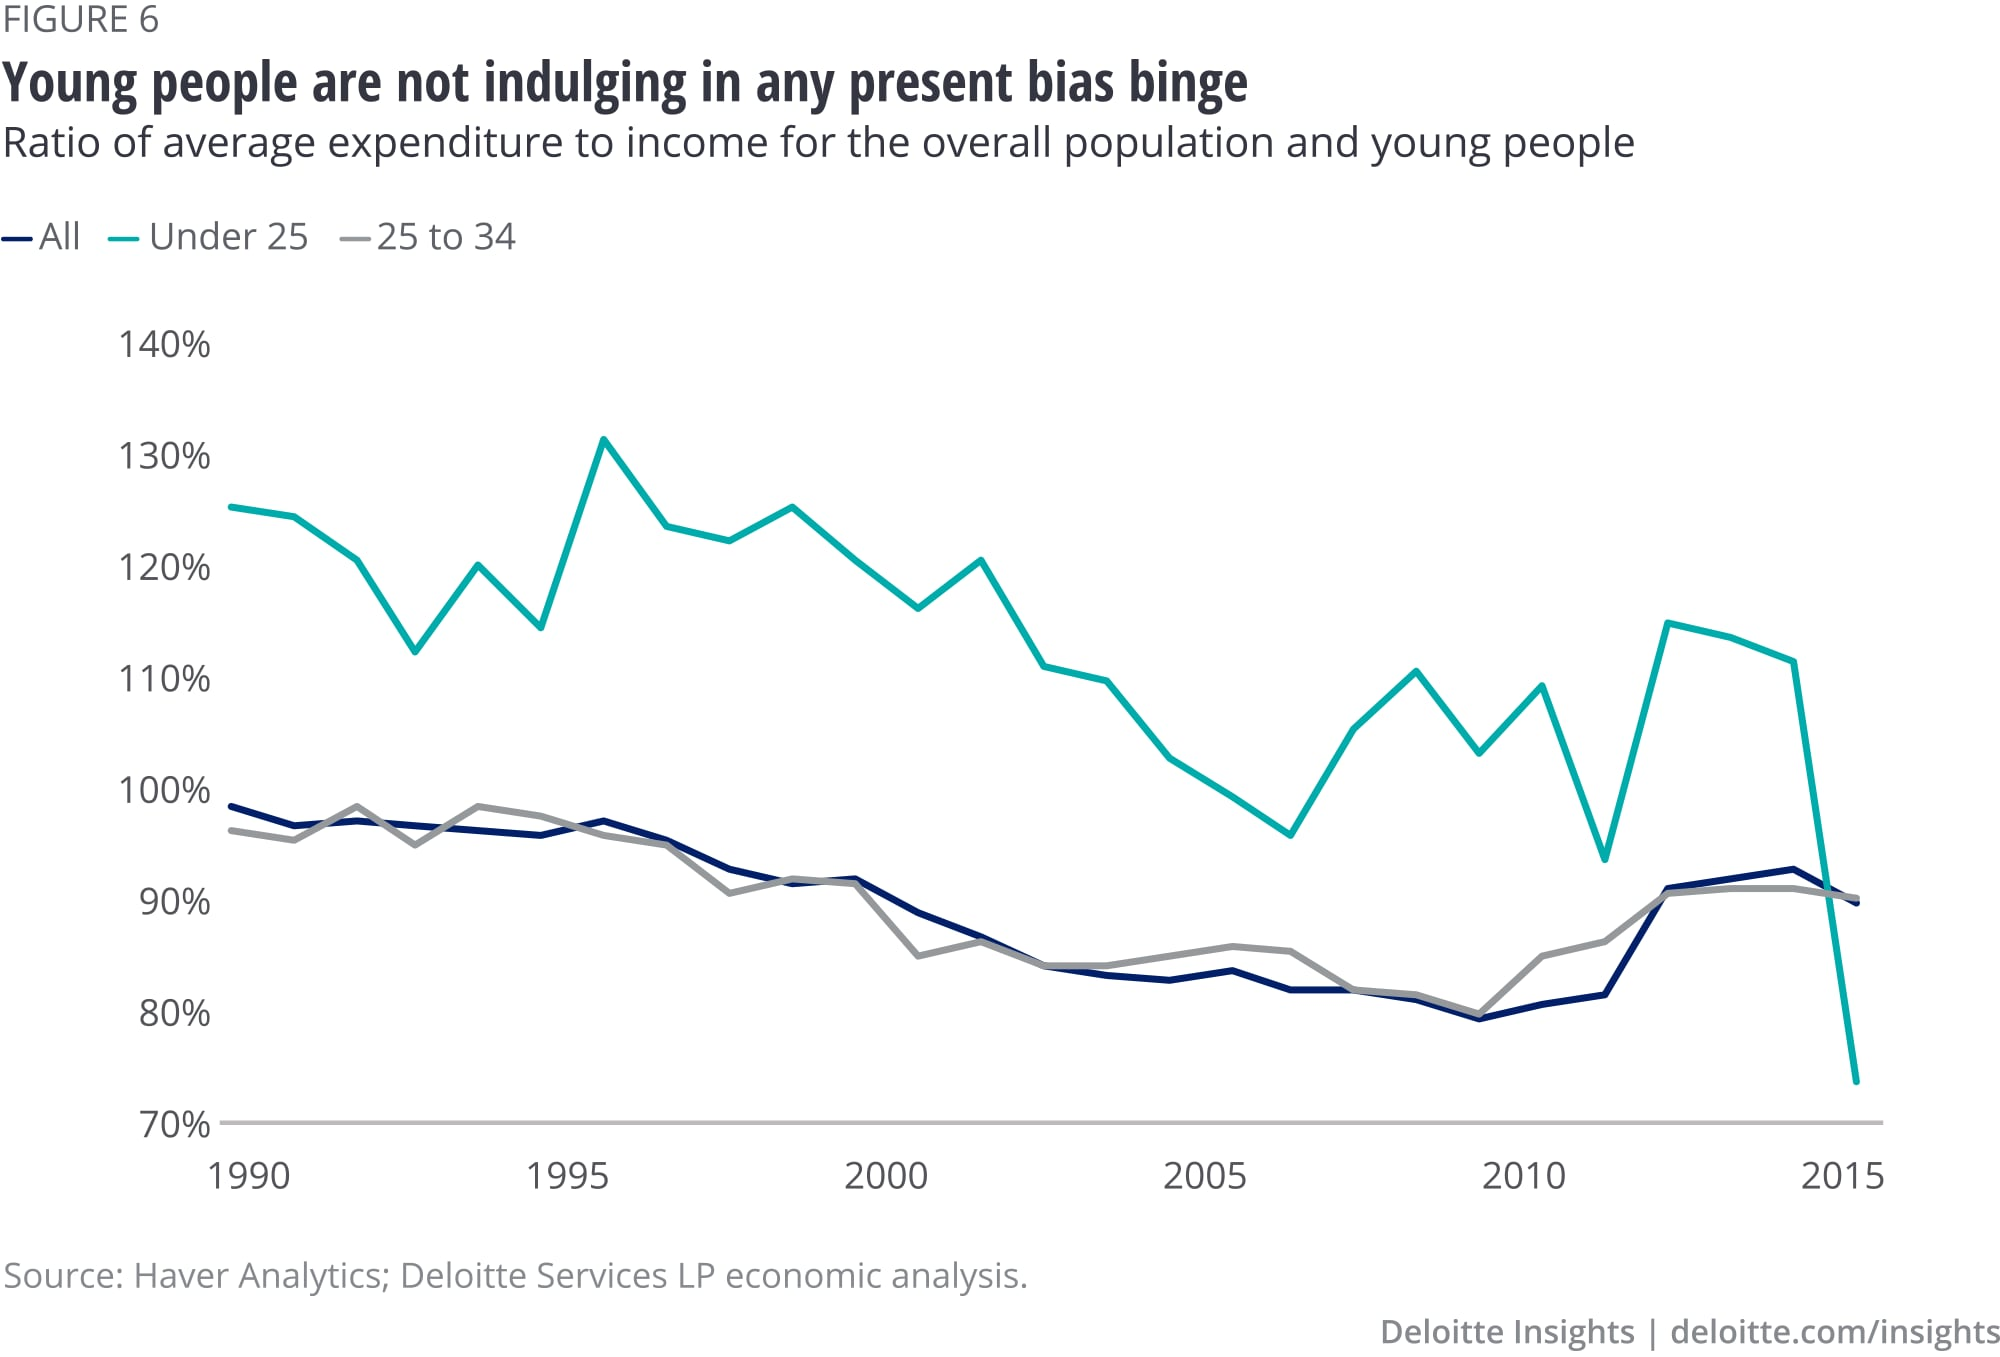 Young people are not indulging in any present bias binge